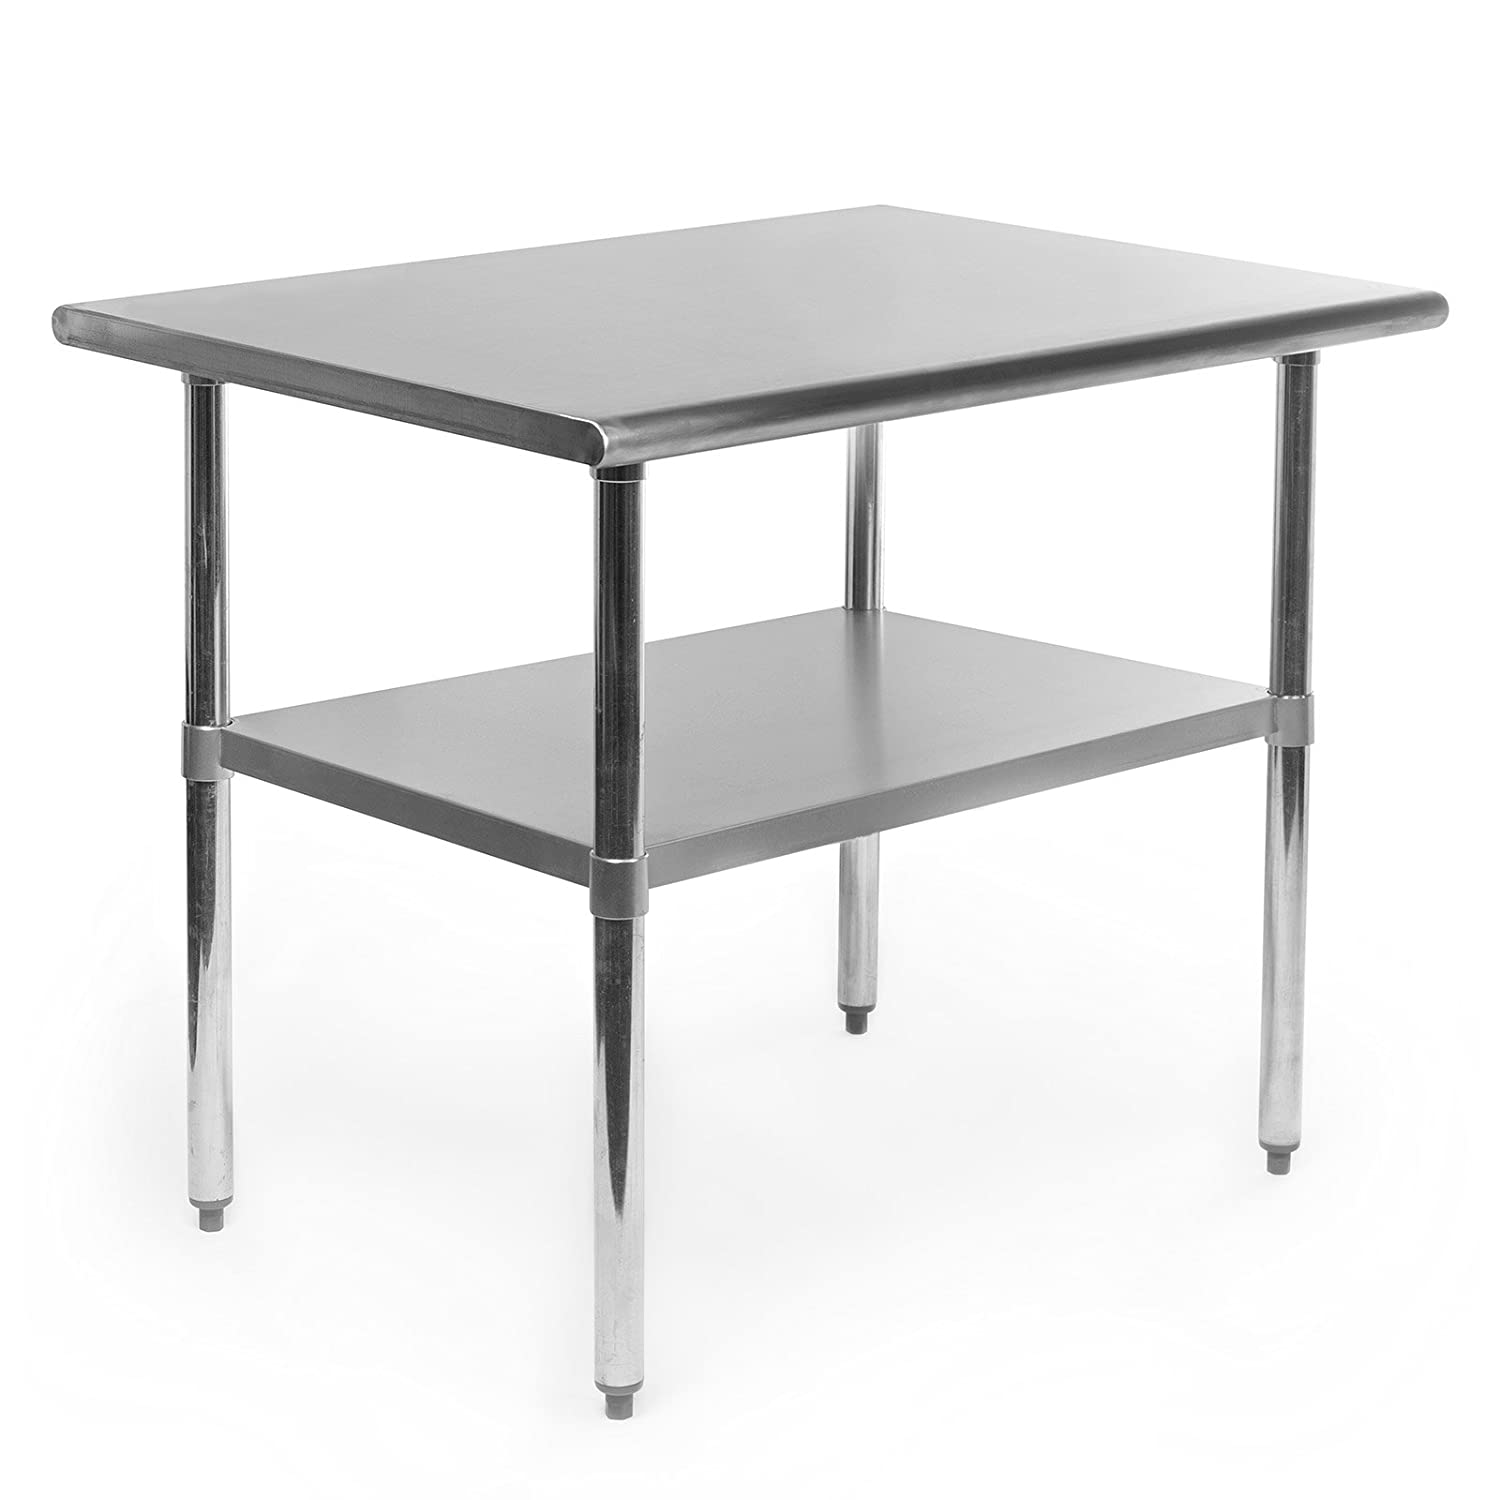 b ie UTF8&node kitchen prep table Gridmann Stainless Steel Commercial Kitchen Prep Work Table 36 in 24 in